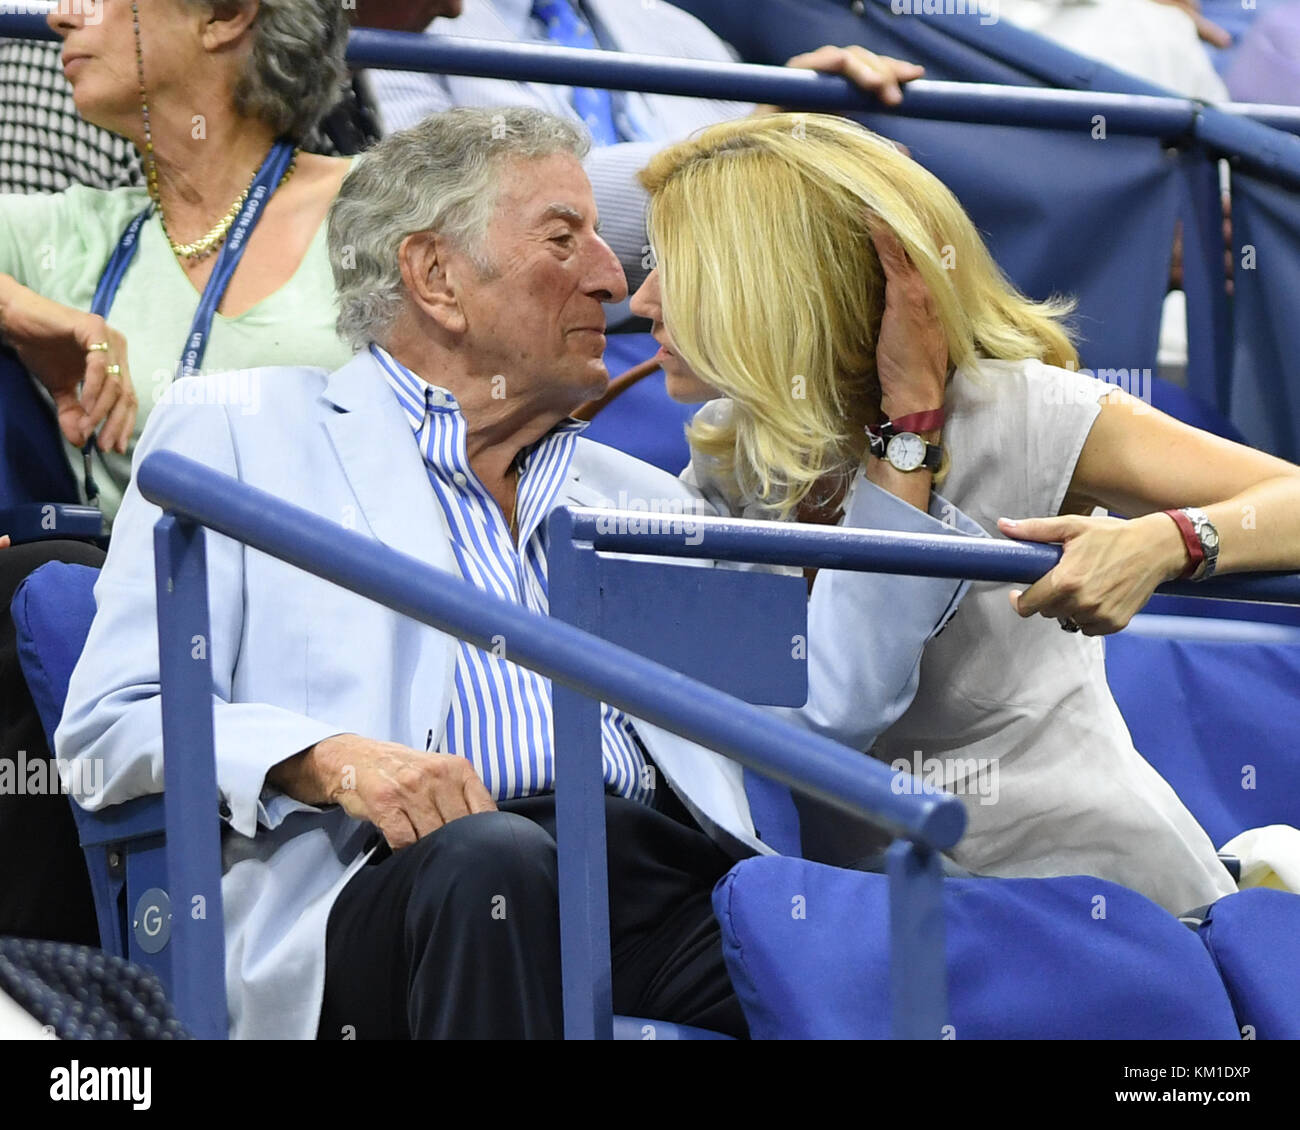 NEW YORK, NY - SEPTEMBER 07: Tony Bennett, Susan Crow on Day Ten of the 2016 US Open at the USTA Billie Jean King - Stock Image